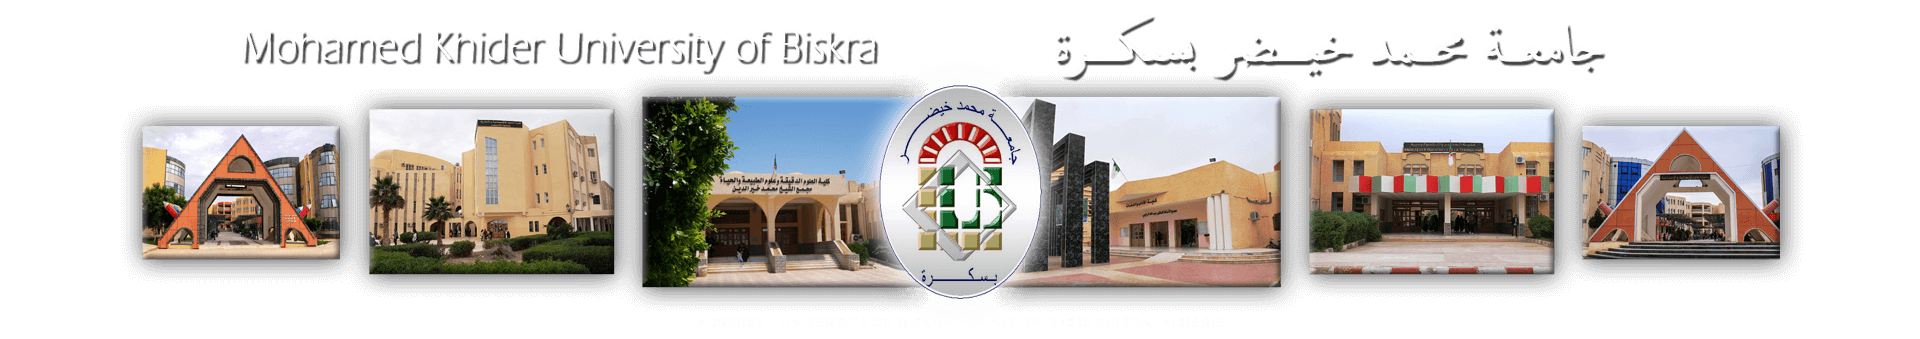 Université Mohamed Khider Biskra